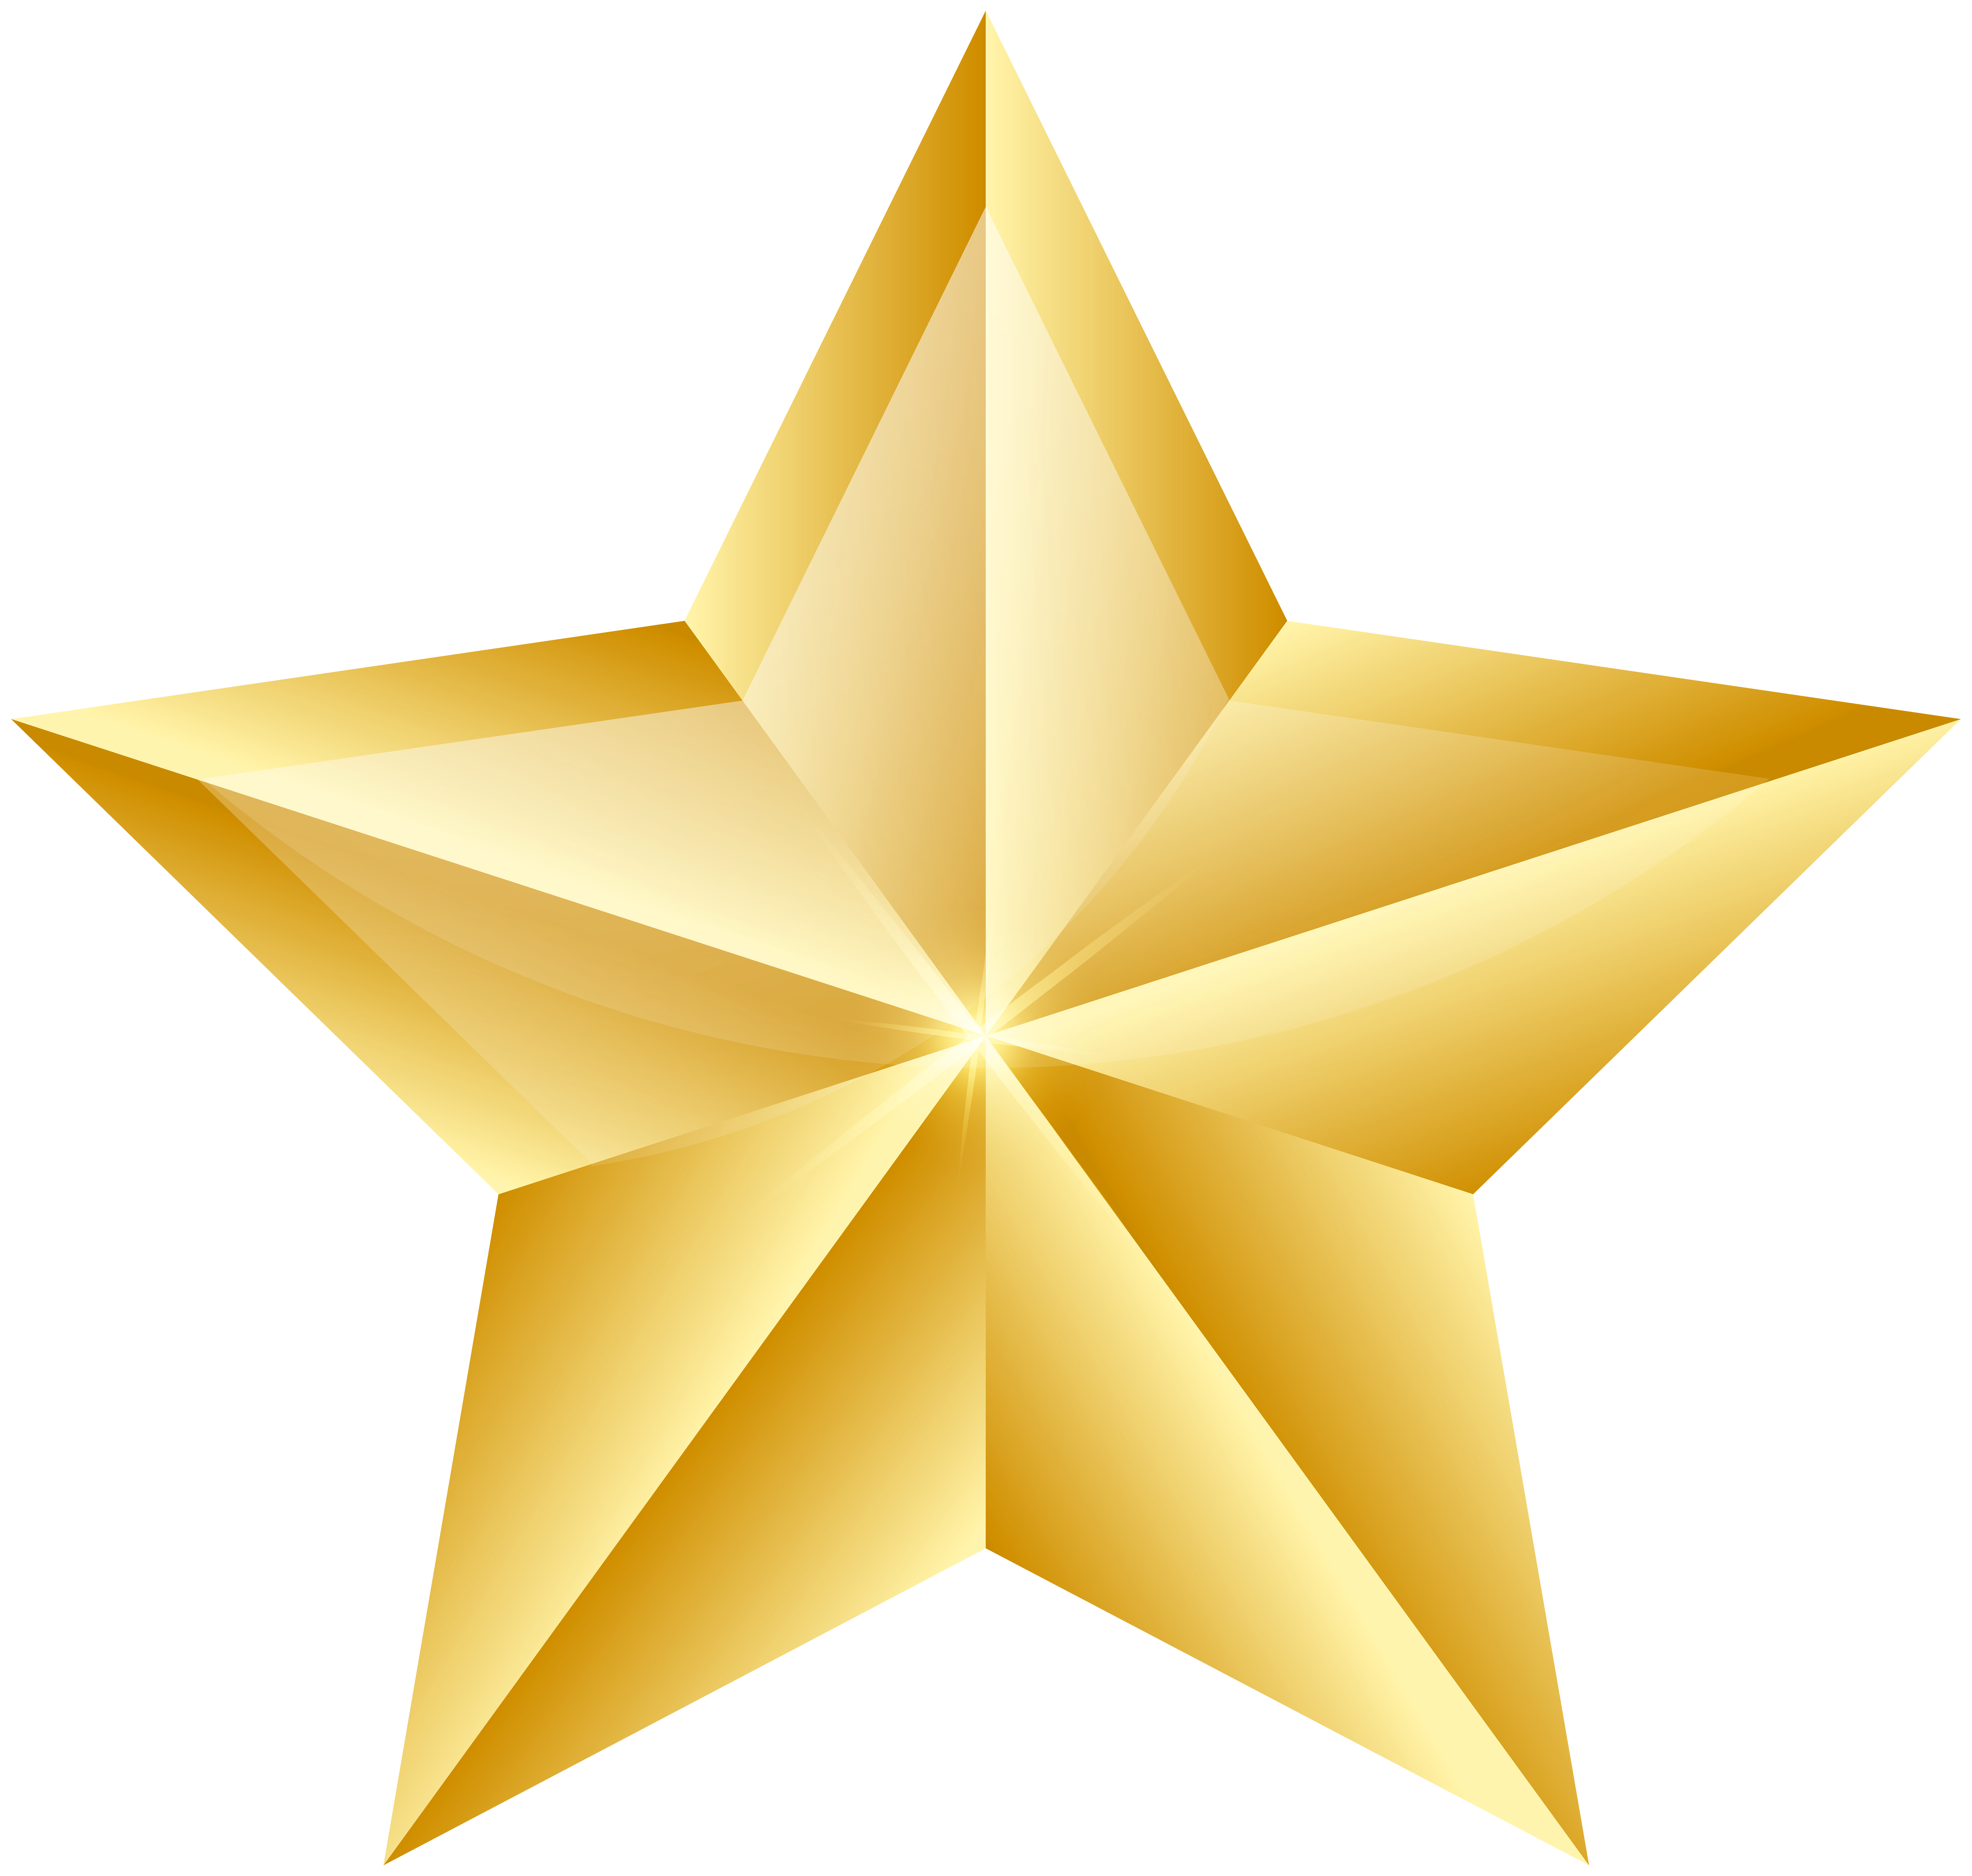 Clip art png image. Different sized star clipart